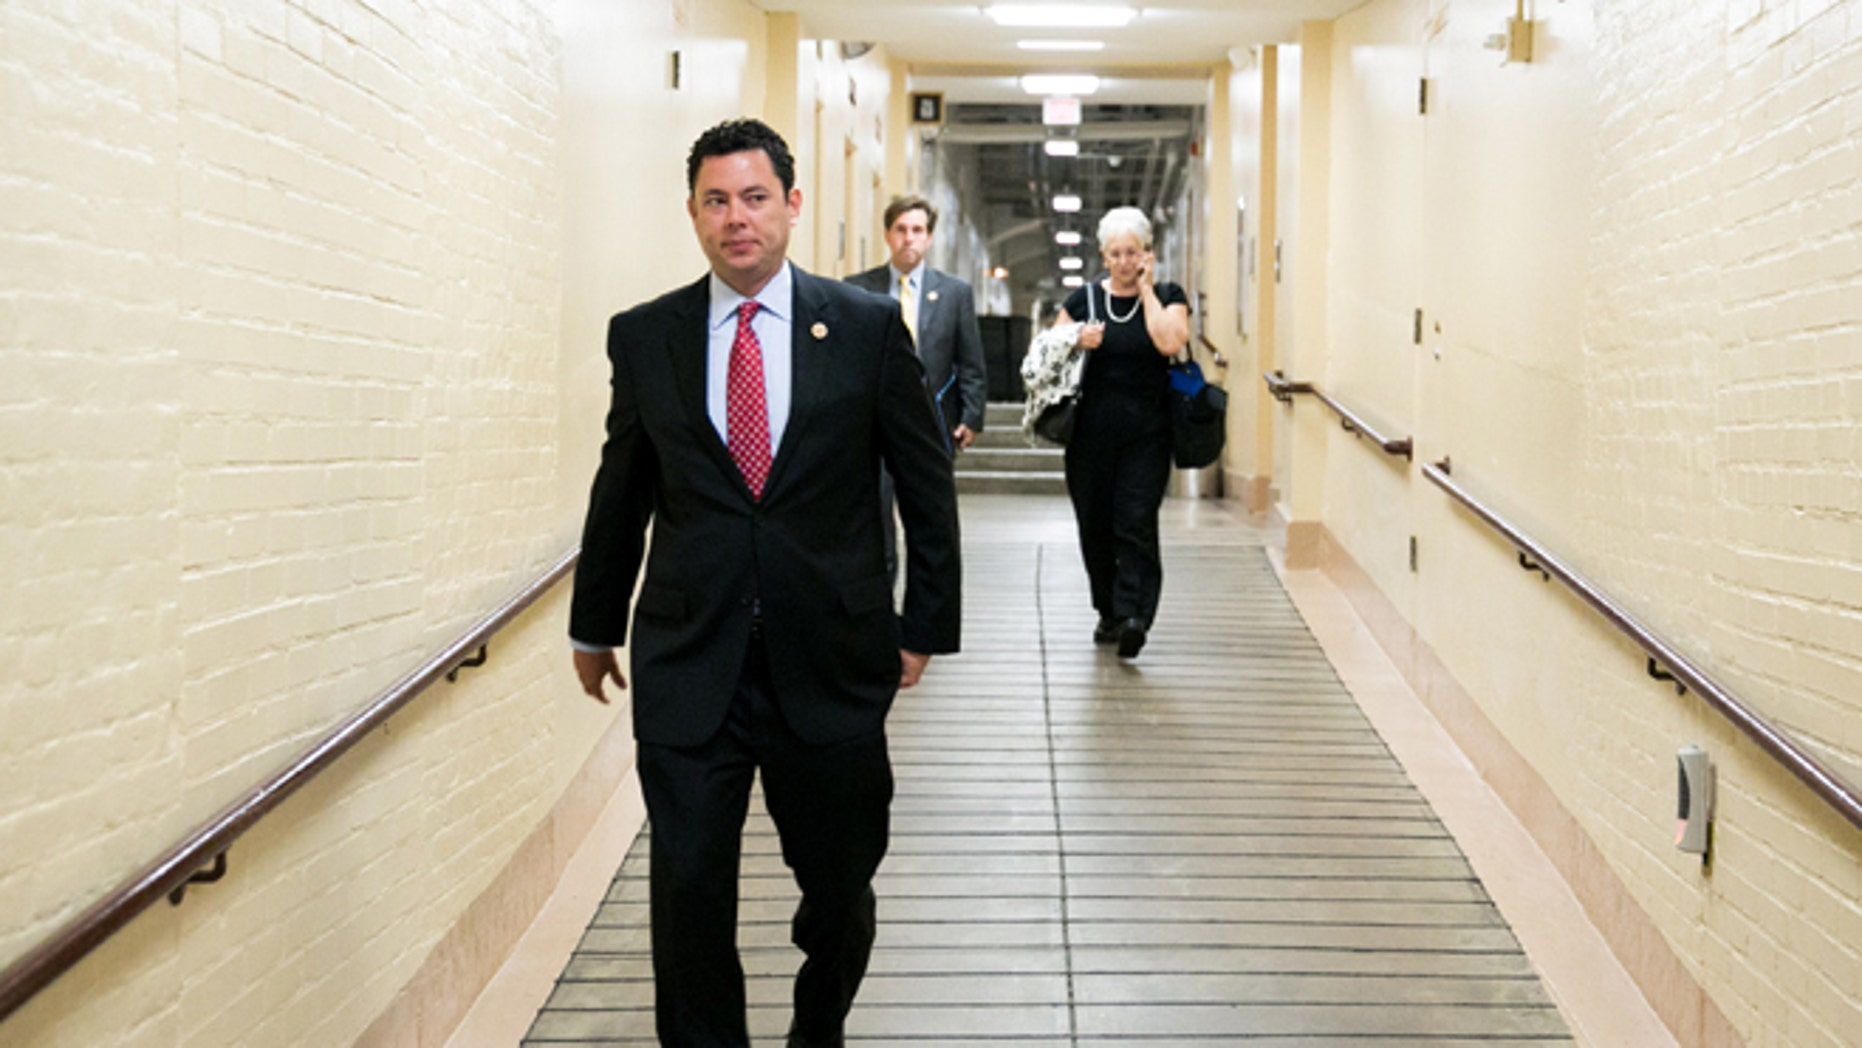 WASHINGTON, DC - JULY 9:  U.S. Rep. Jason Chaffetz (R-UT) makes his way to a House GOP caucus meeting, on Capitol Hill, July 9, 2013 in Washington, DC. The Republican leadership discussed the immigration bill and the Obama administration's decision to delay a portion of the Affordable Care Act, which will extend the deadline for employer mandated health care to 2015. At right, Trey Radel (R-FL) and House Majority Leader Eric Cantor (R-VA) look on. (Photo by Drew Angerer/Getty Images)